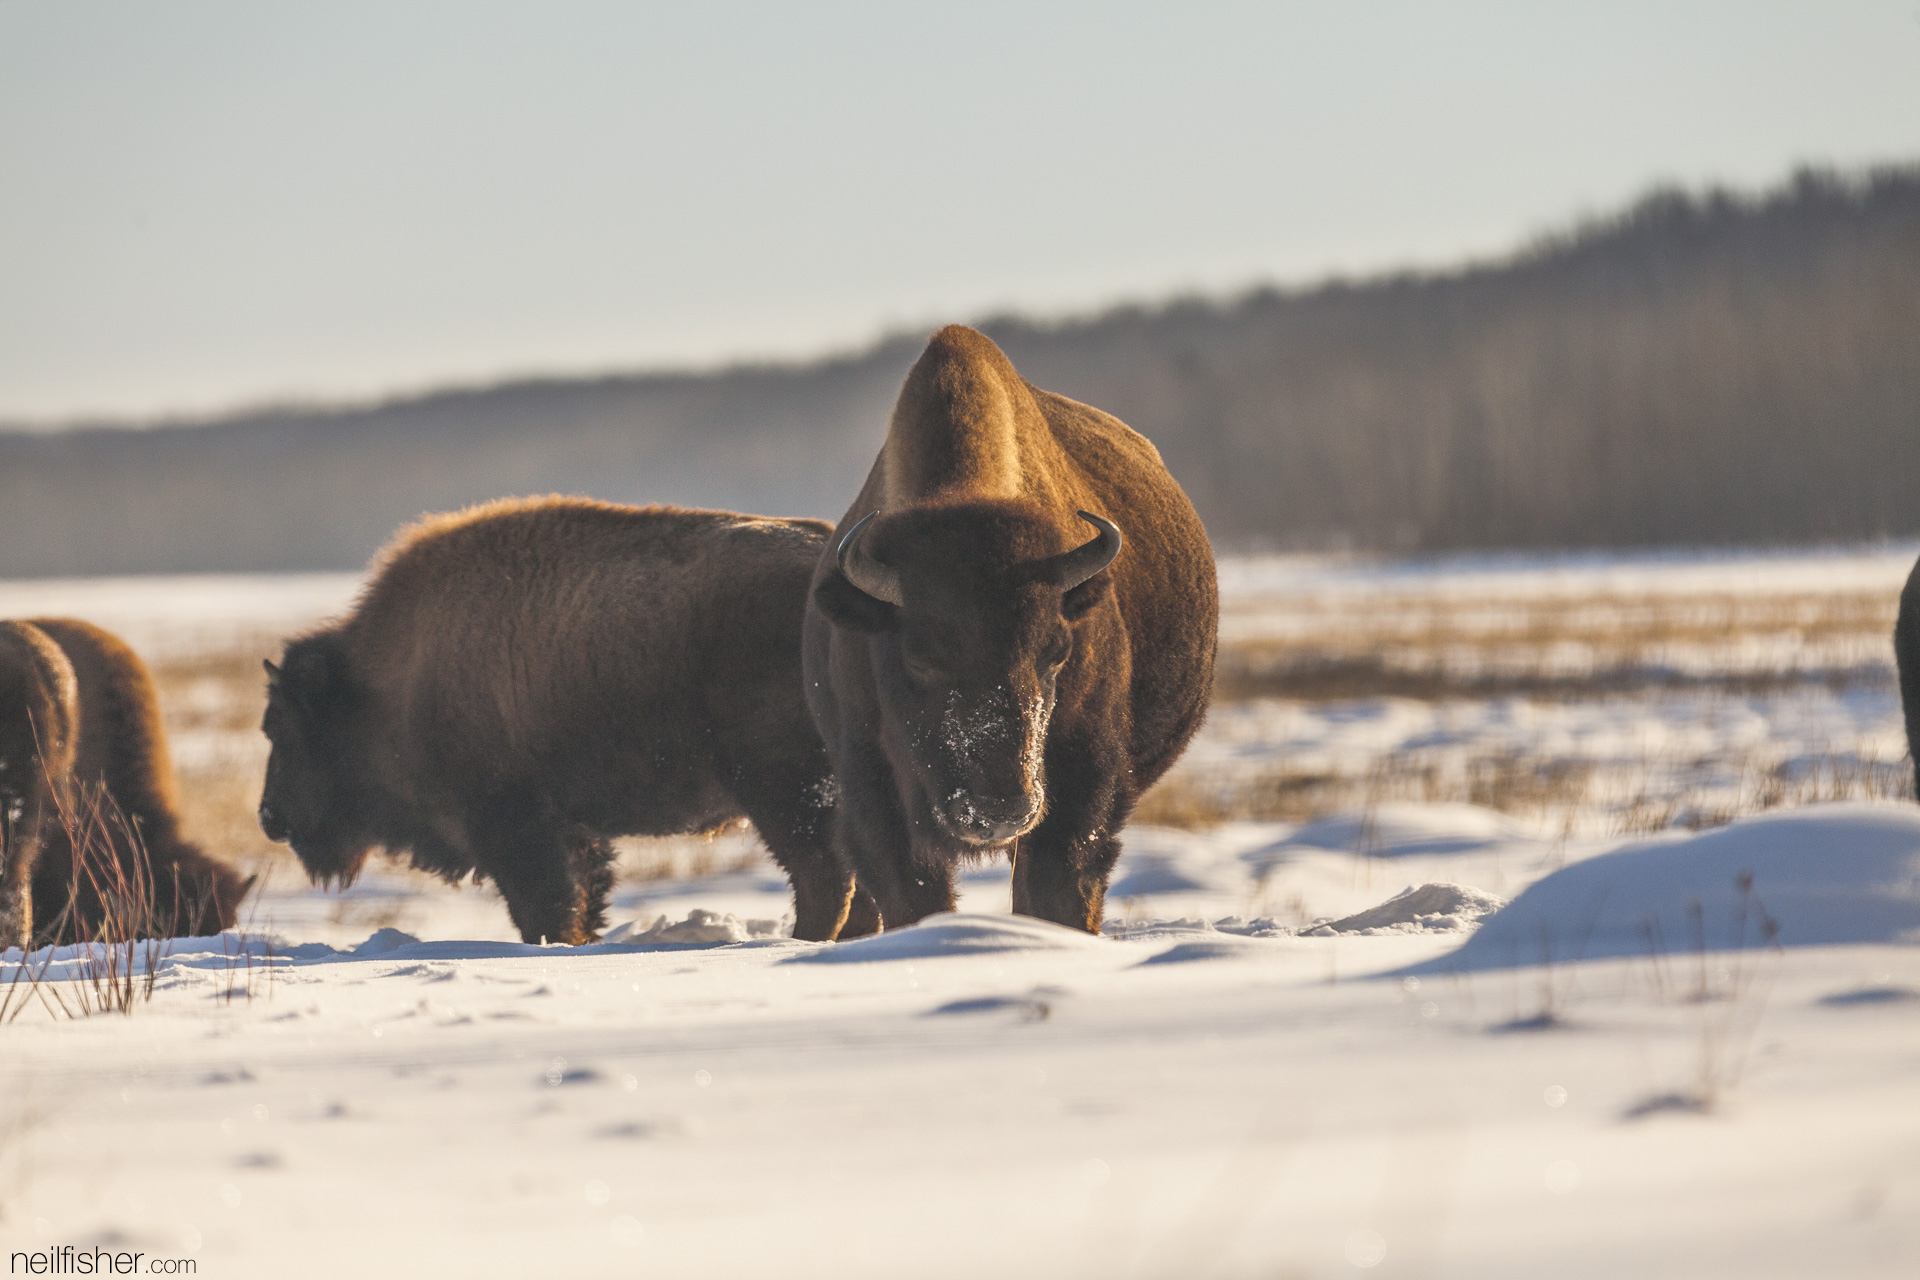 The bison's dense, scruffy coat is so well insulated that snow can collect on its back without melting.